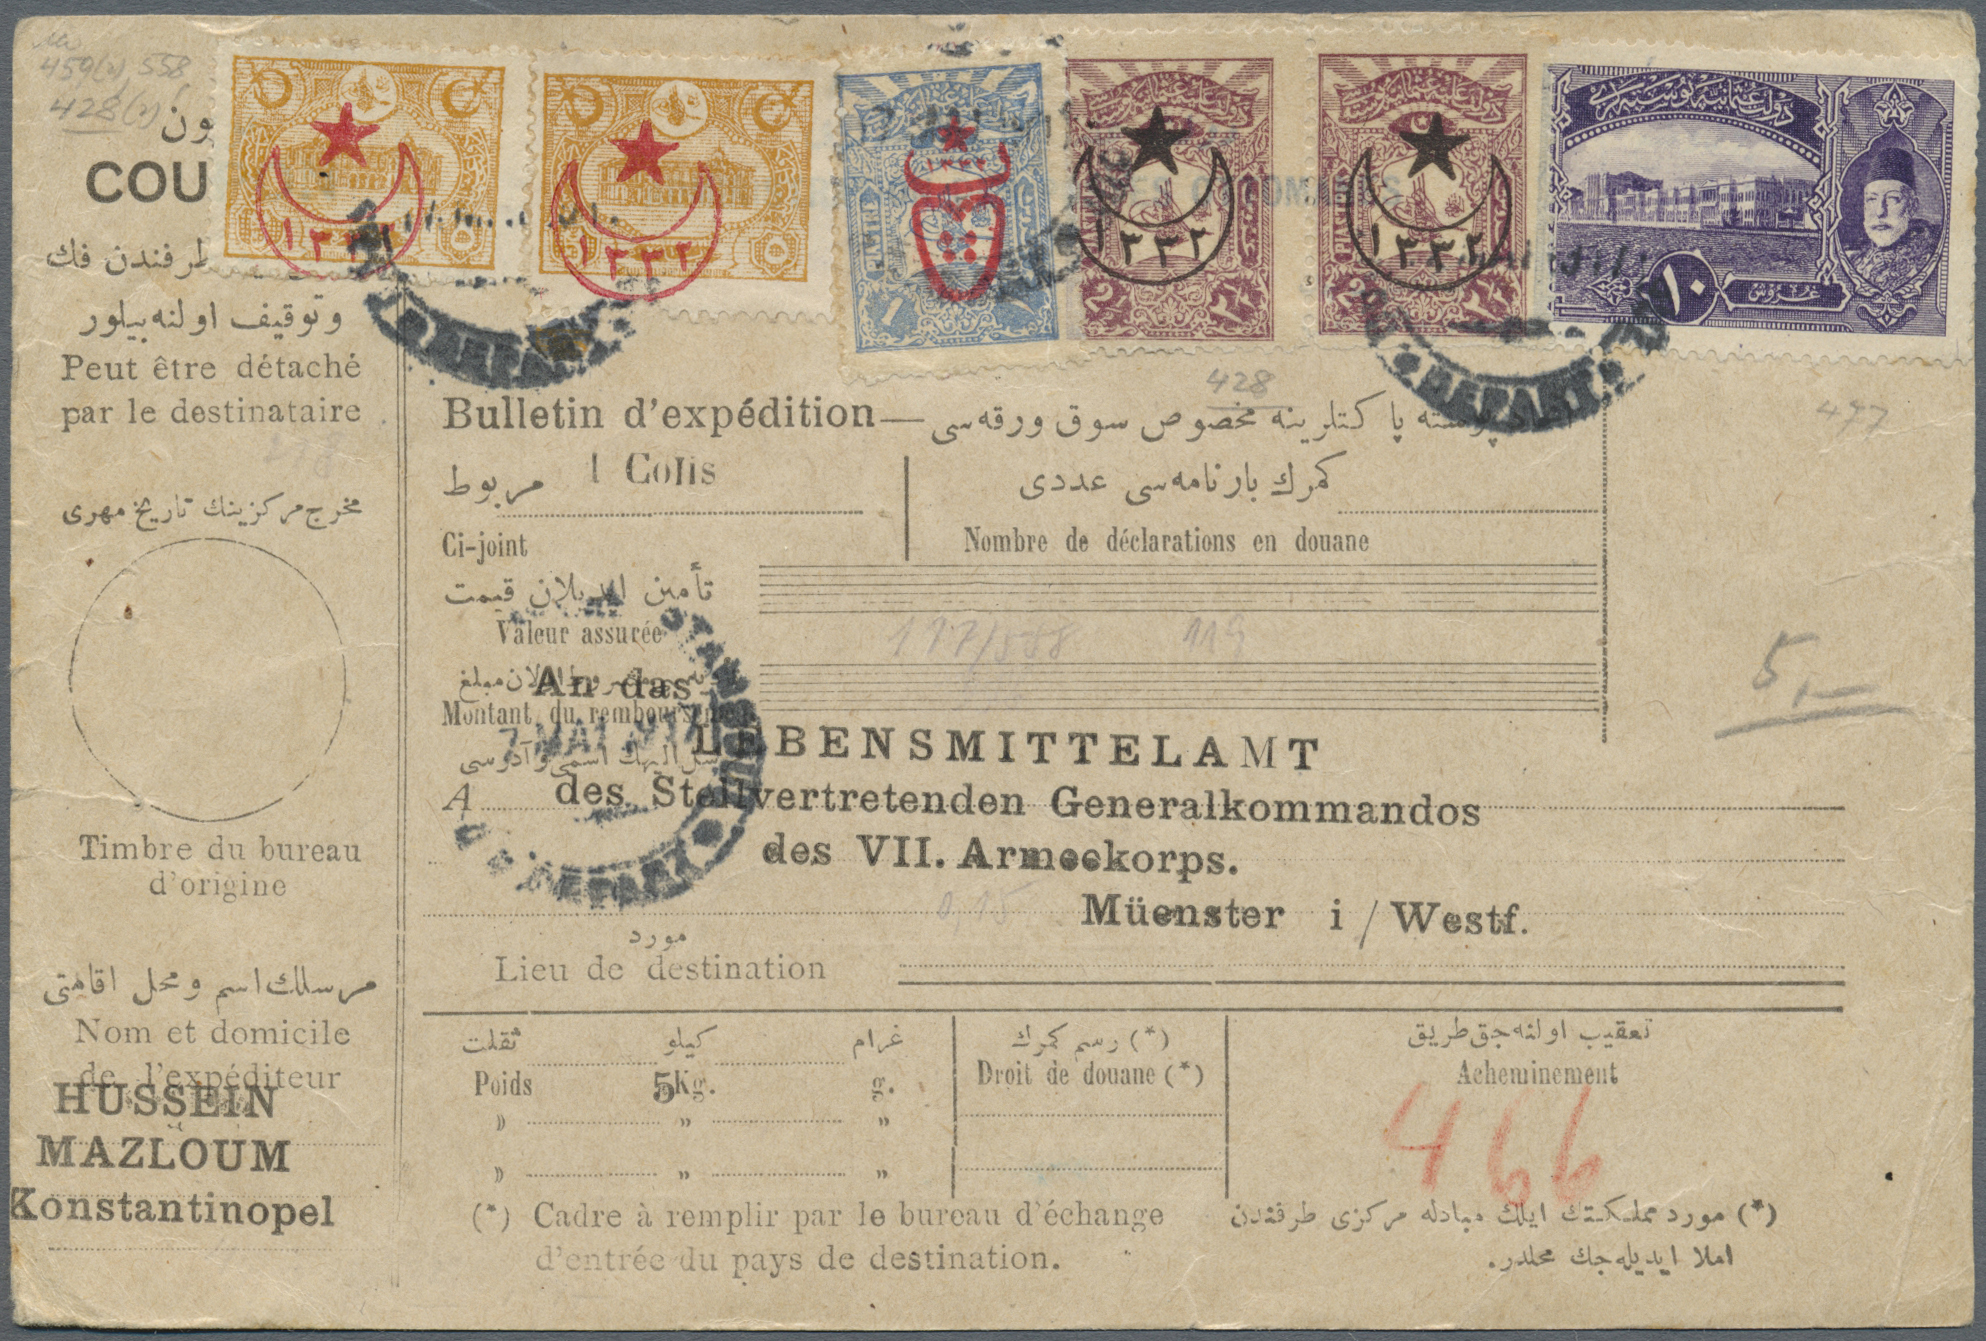 Lot 37420 - feldpost 1. weltkrieg  -  Auktionshaus Christoph Gärtner GmbH & Co. KG Collections Germany,  Collections Supplement, Surprise boxes #39 Day 7